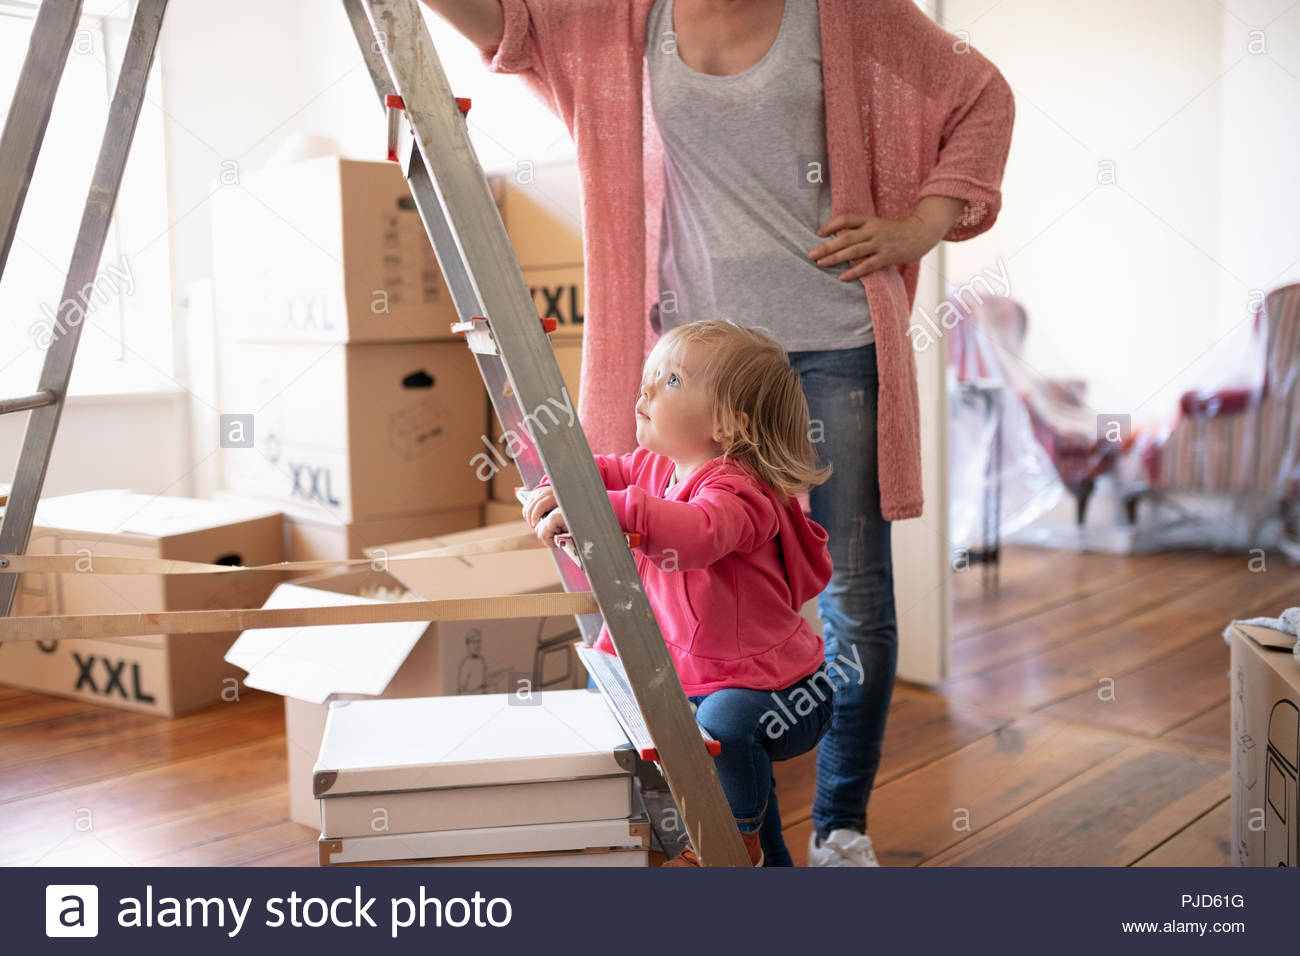 Curious girl climbing ladder, moving into new home - Stock Image